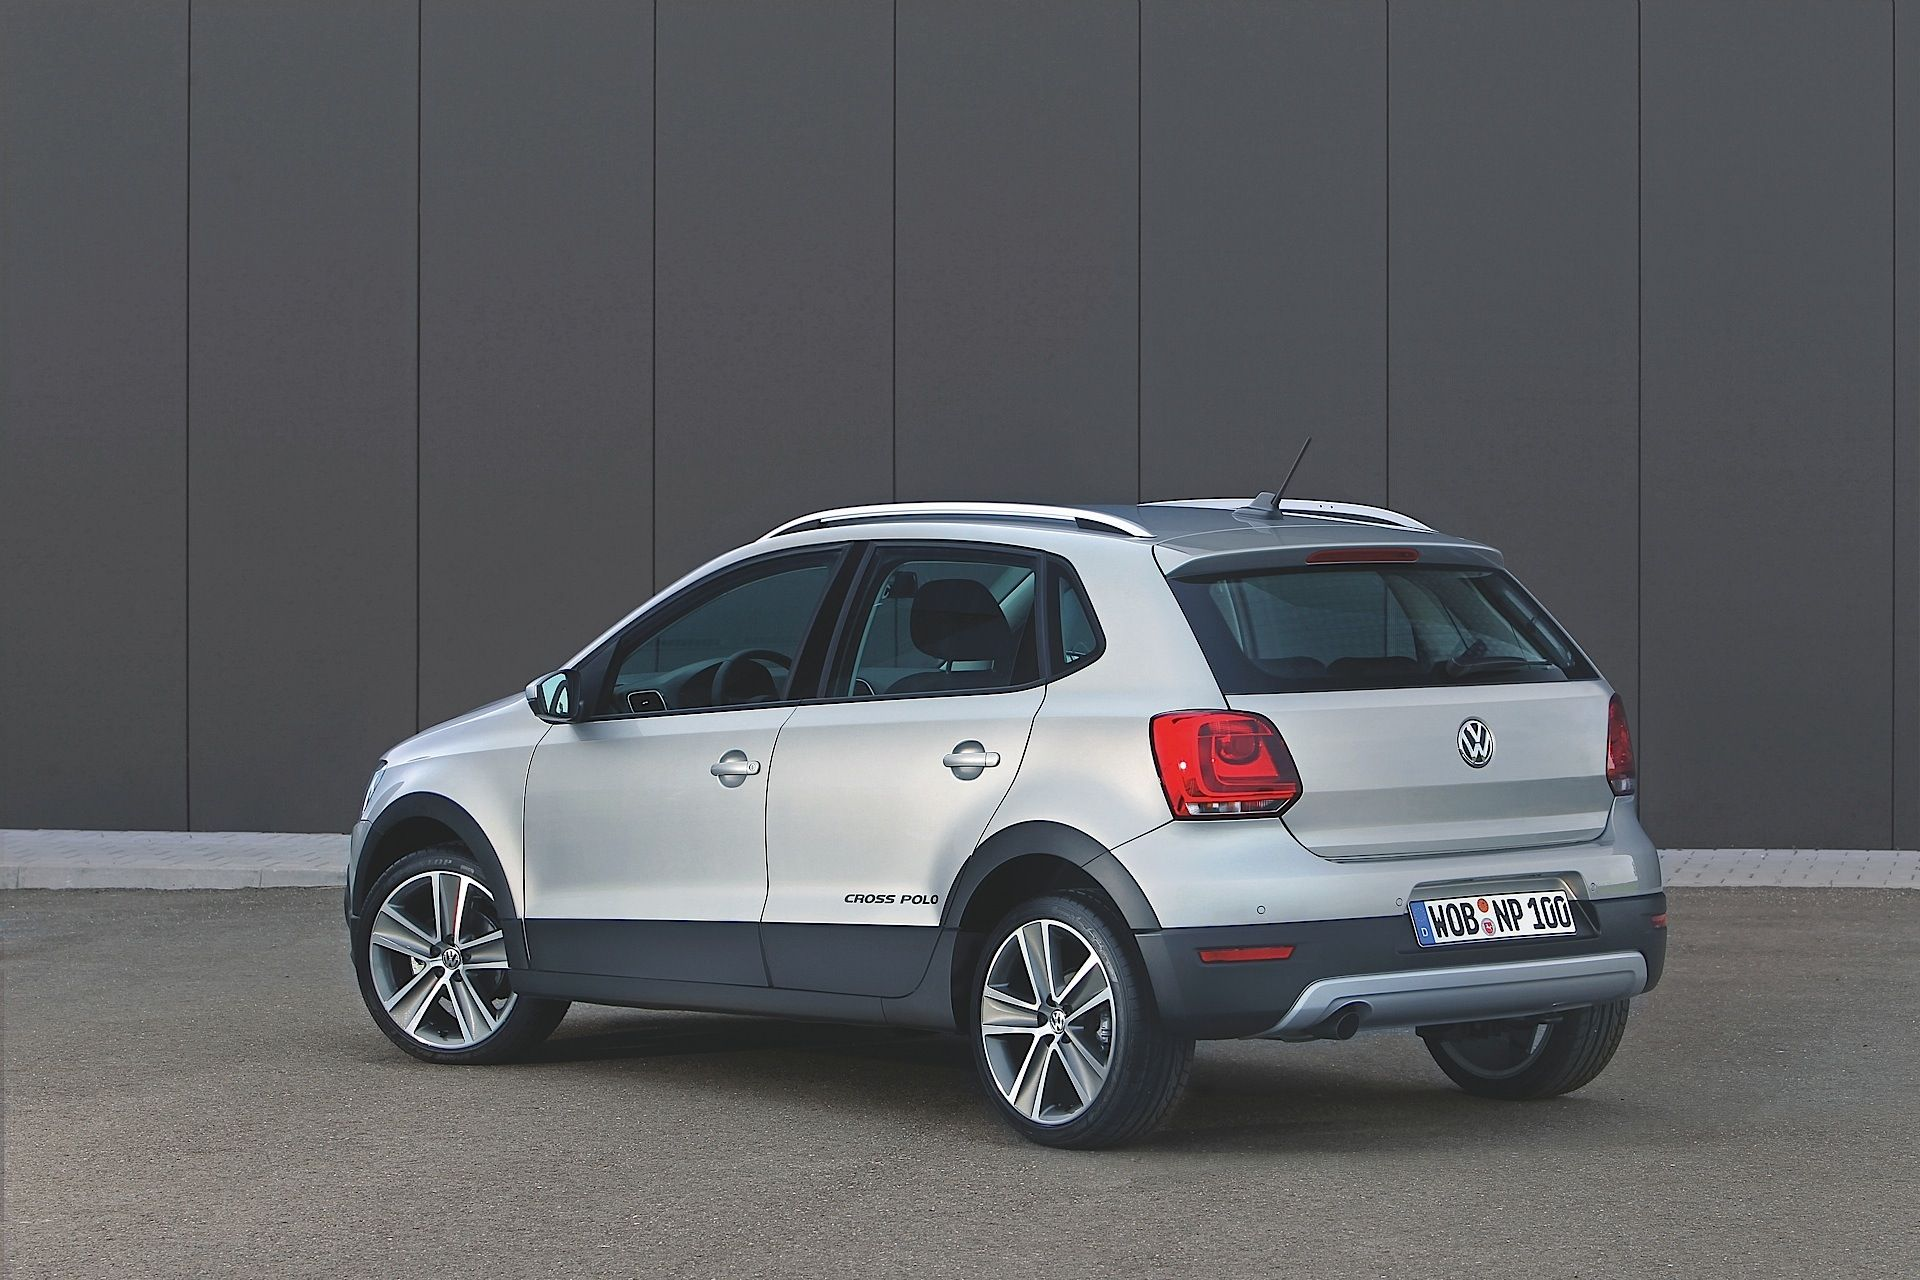 Vw Polo Panoramic Roof Measurements Google Search Volkswagen